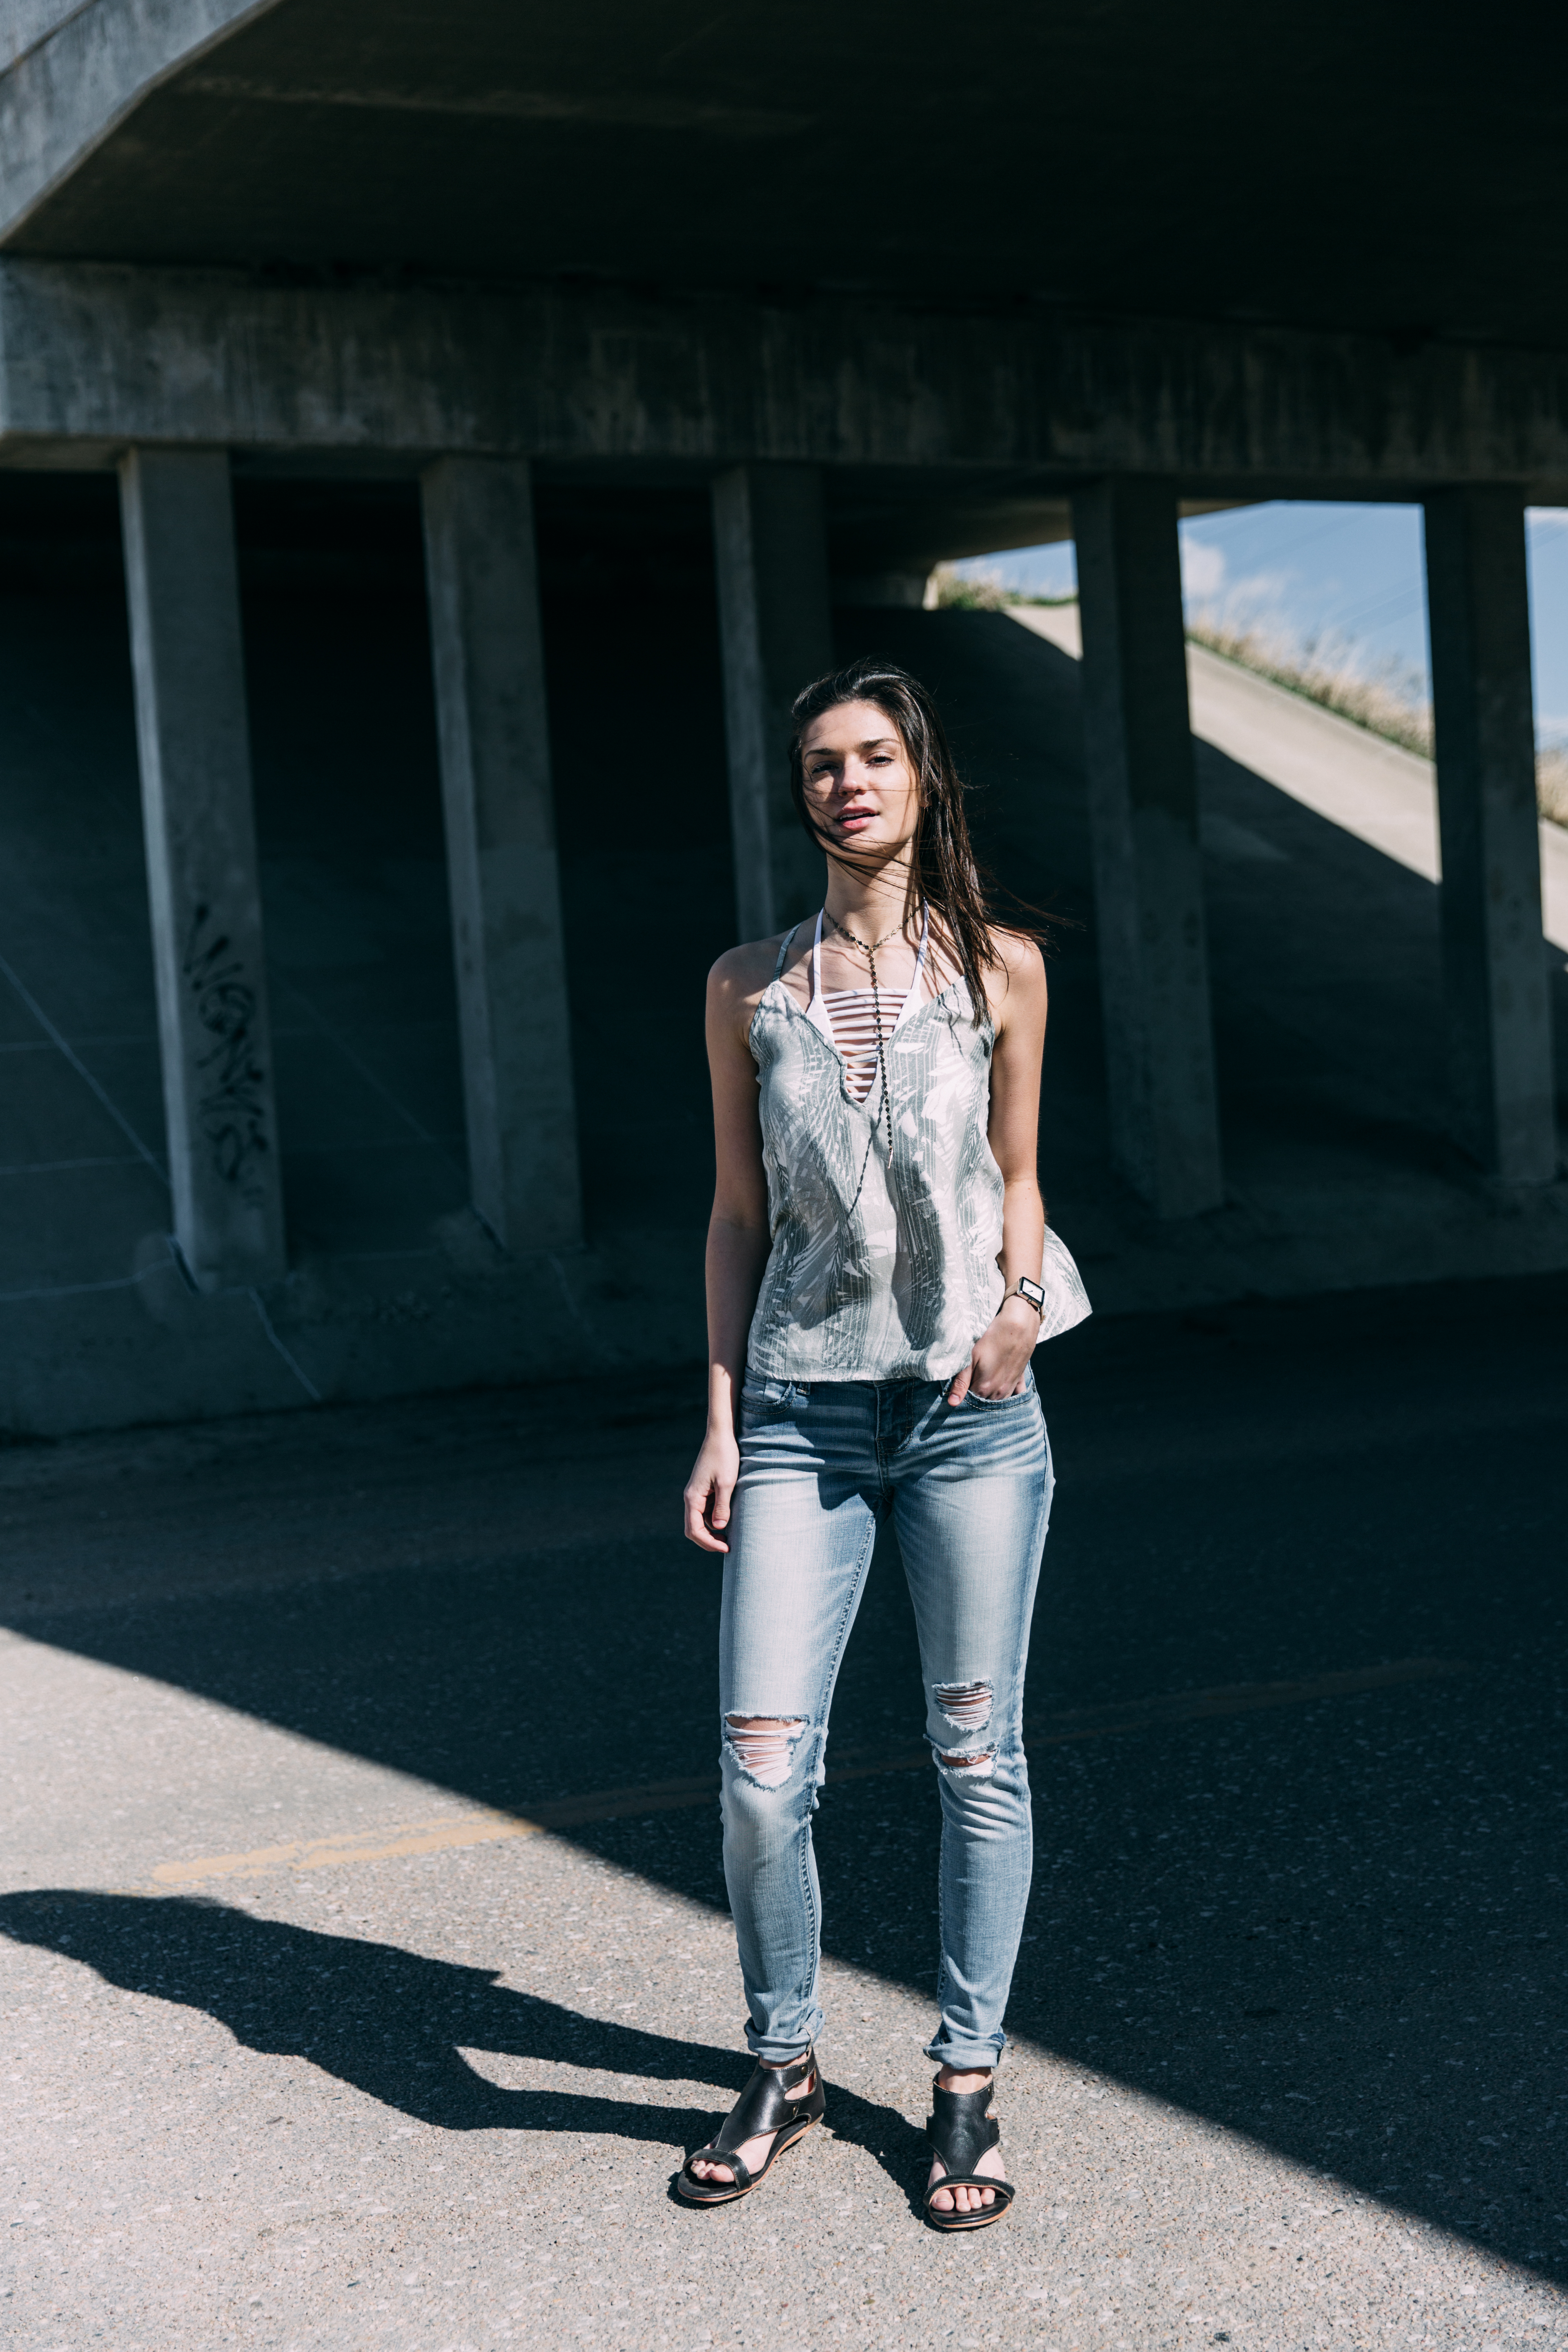 Buckle Black fit No. 53 jeans on a girl in a white bodysuit.